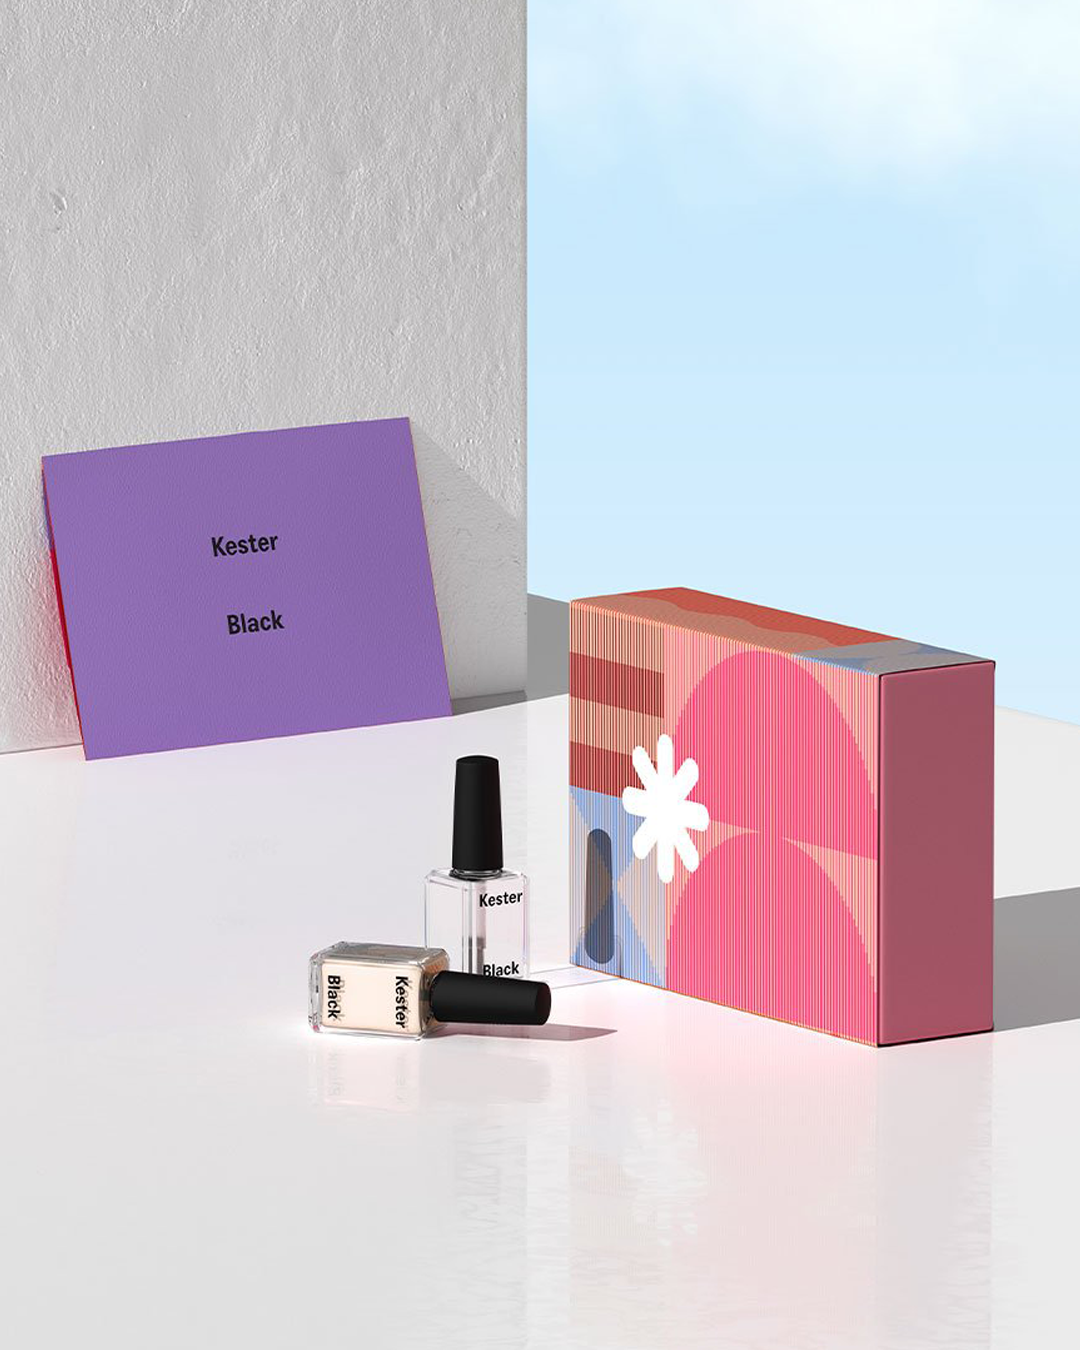 A pink and purple gift box with nail polish from Kester Black